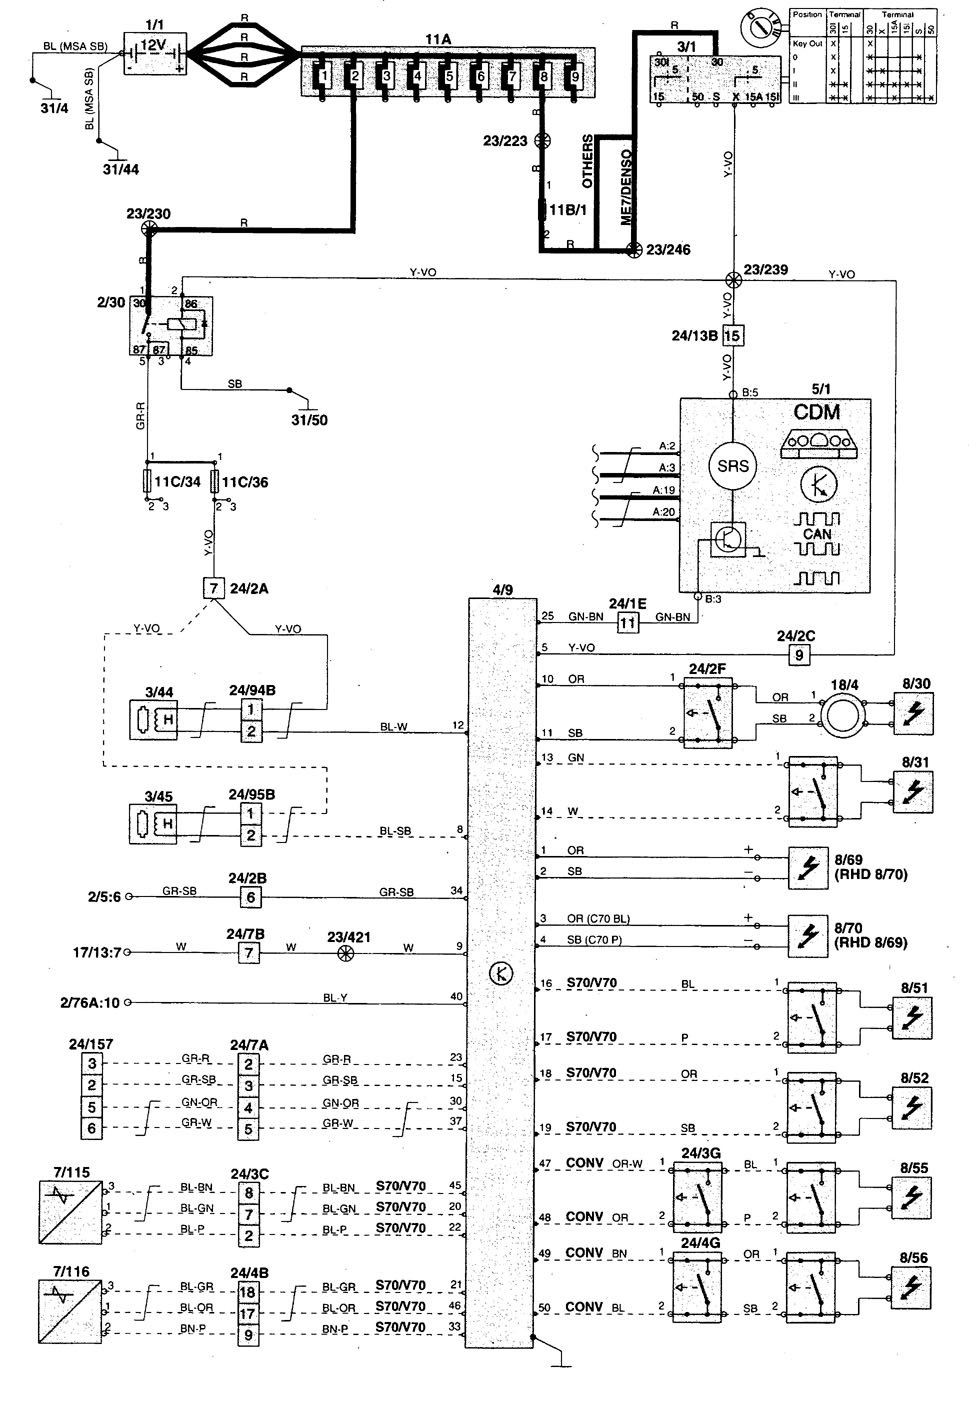 volvo s70 wiring diagram air bags 1999 volvo s70 (1999 2000) wiring diagrams air bags carknowledge  at edmiracle.co